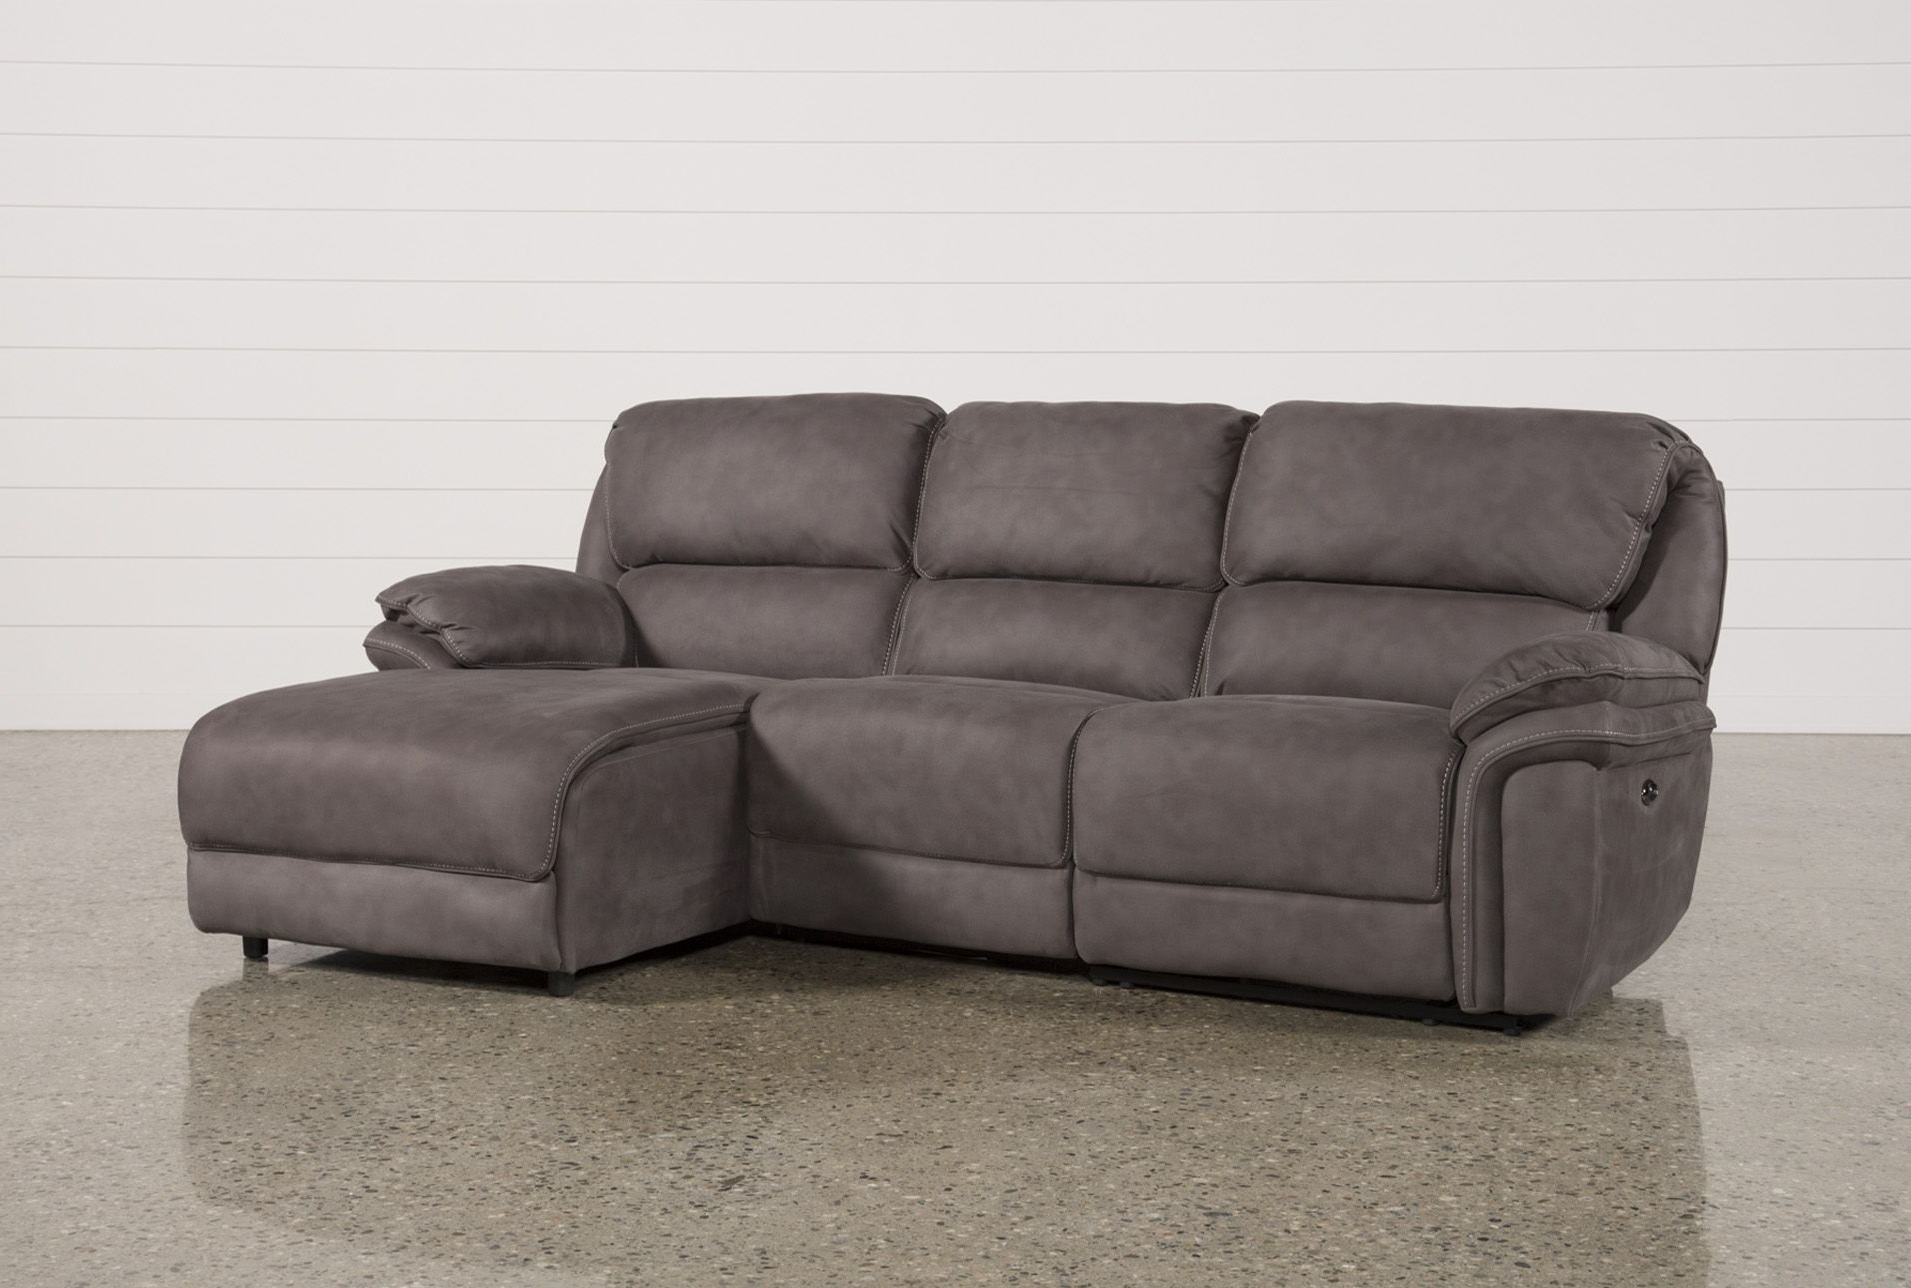 Norfolk Grey 3 Piece Sectionals With Laf Chaise Regarding 2018 Norfolk Grey 3 Piece Sectional W/raf Chaise (View 13 of 20)